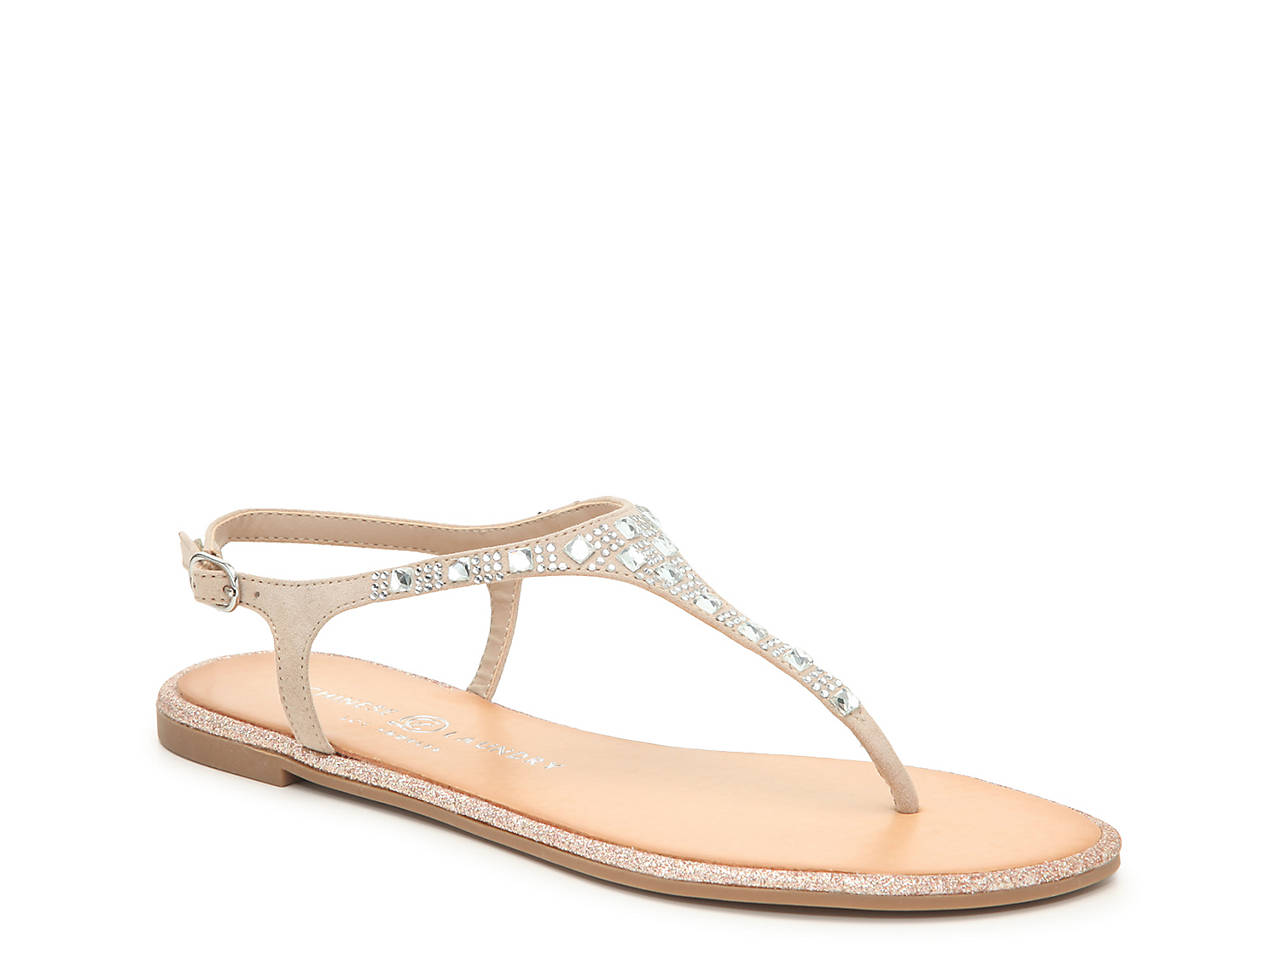 Chinese Laundry Cain Sandal Women s Shoes  a7eb34bcf4